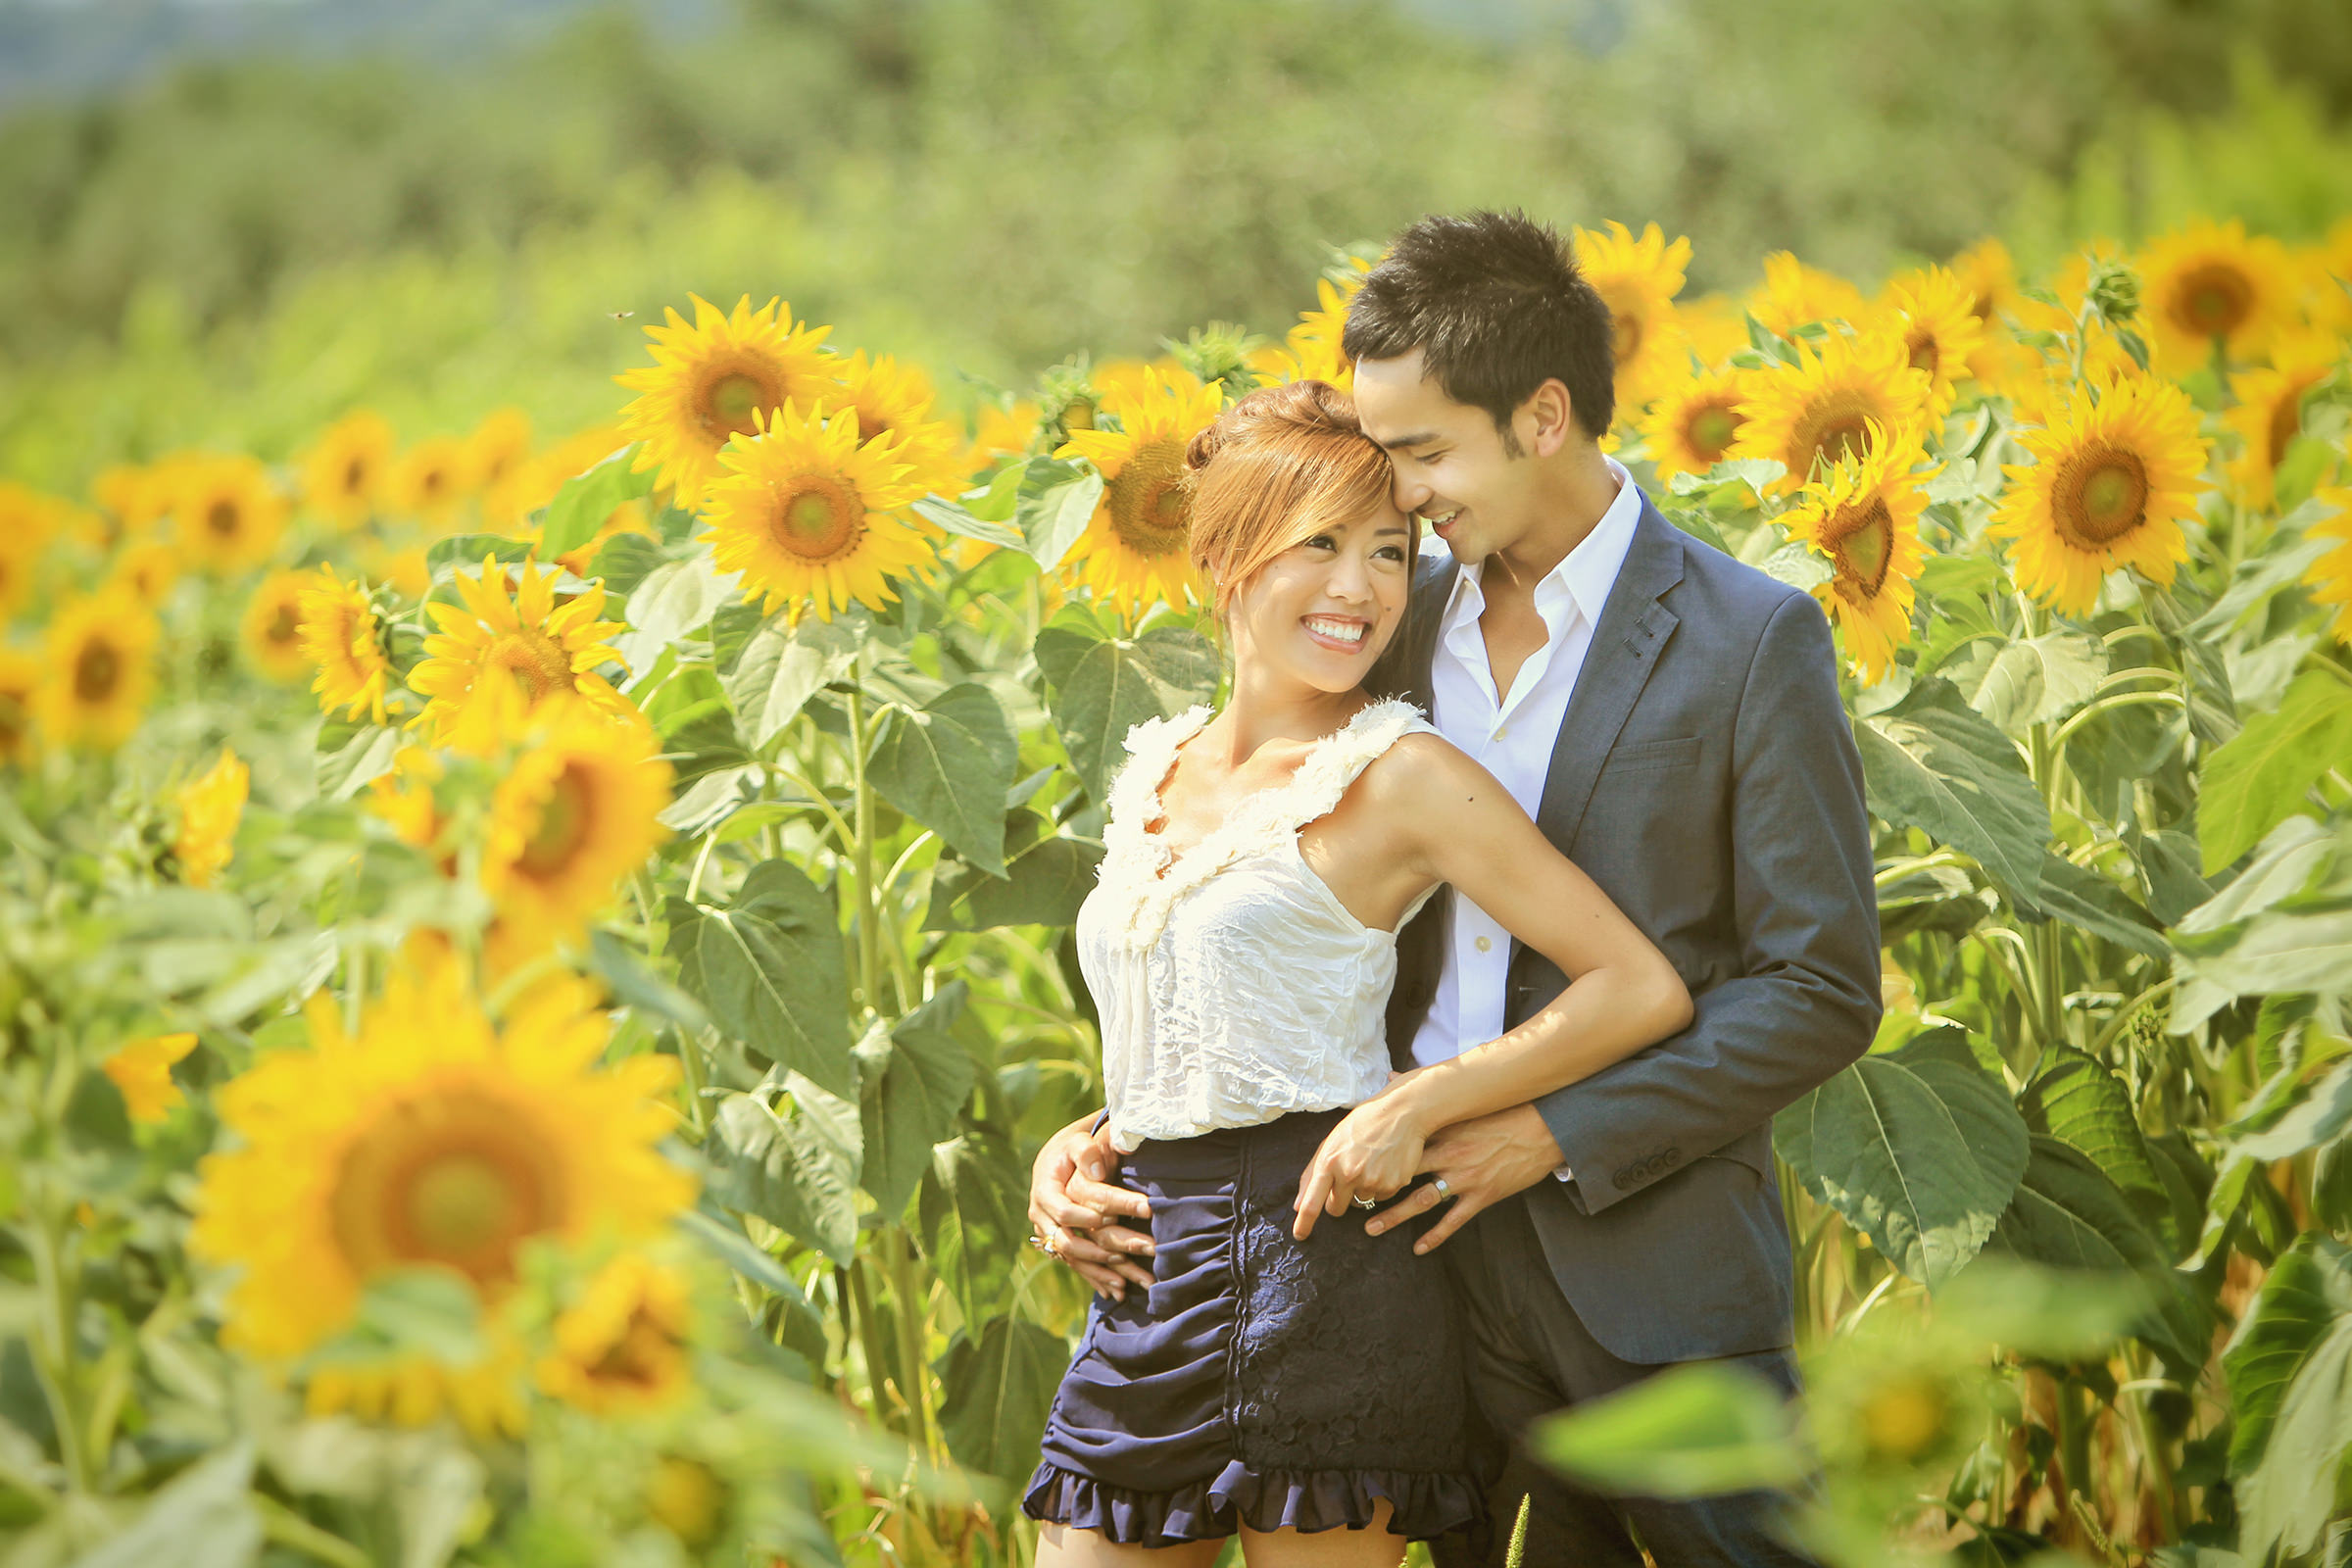 Engagement couple portrait in field of sunflowers - photo by Kenny Kim Photography